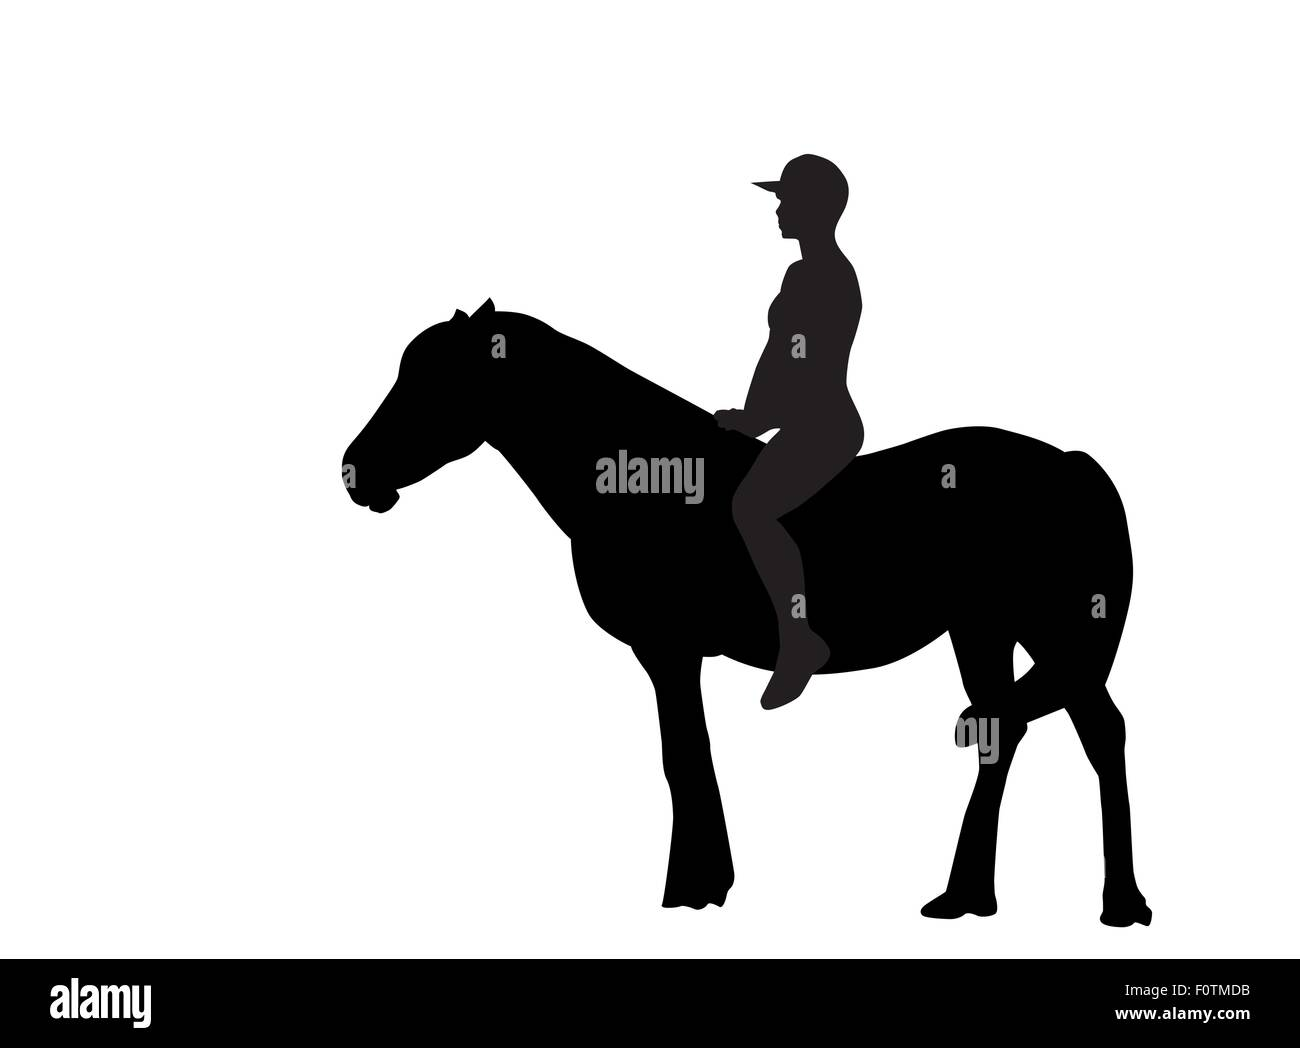 Silhouette of the Rider on the Horse. Vector Illustration. - Stock Vector